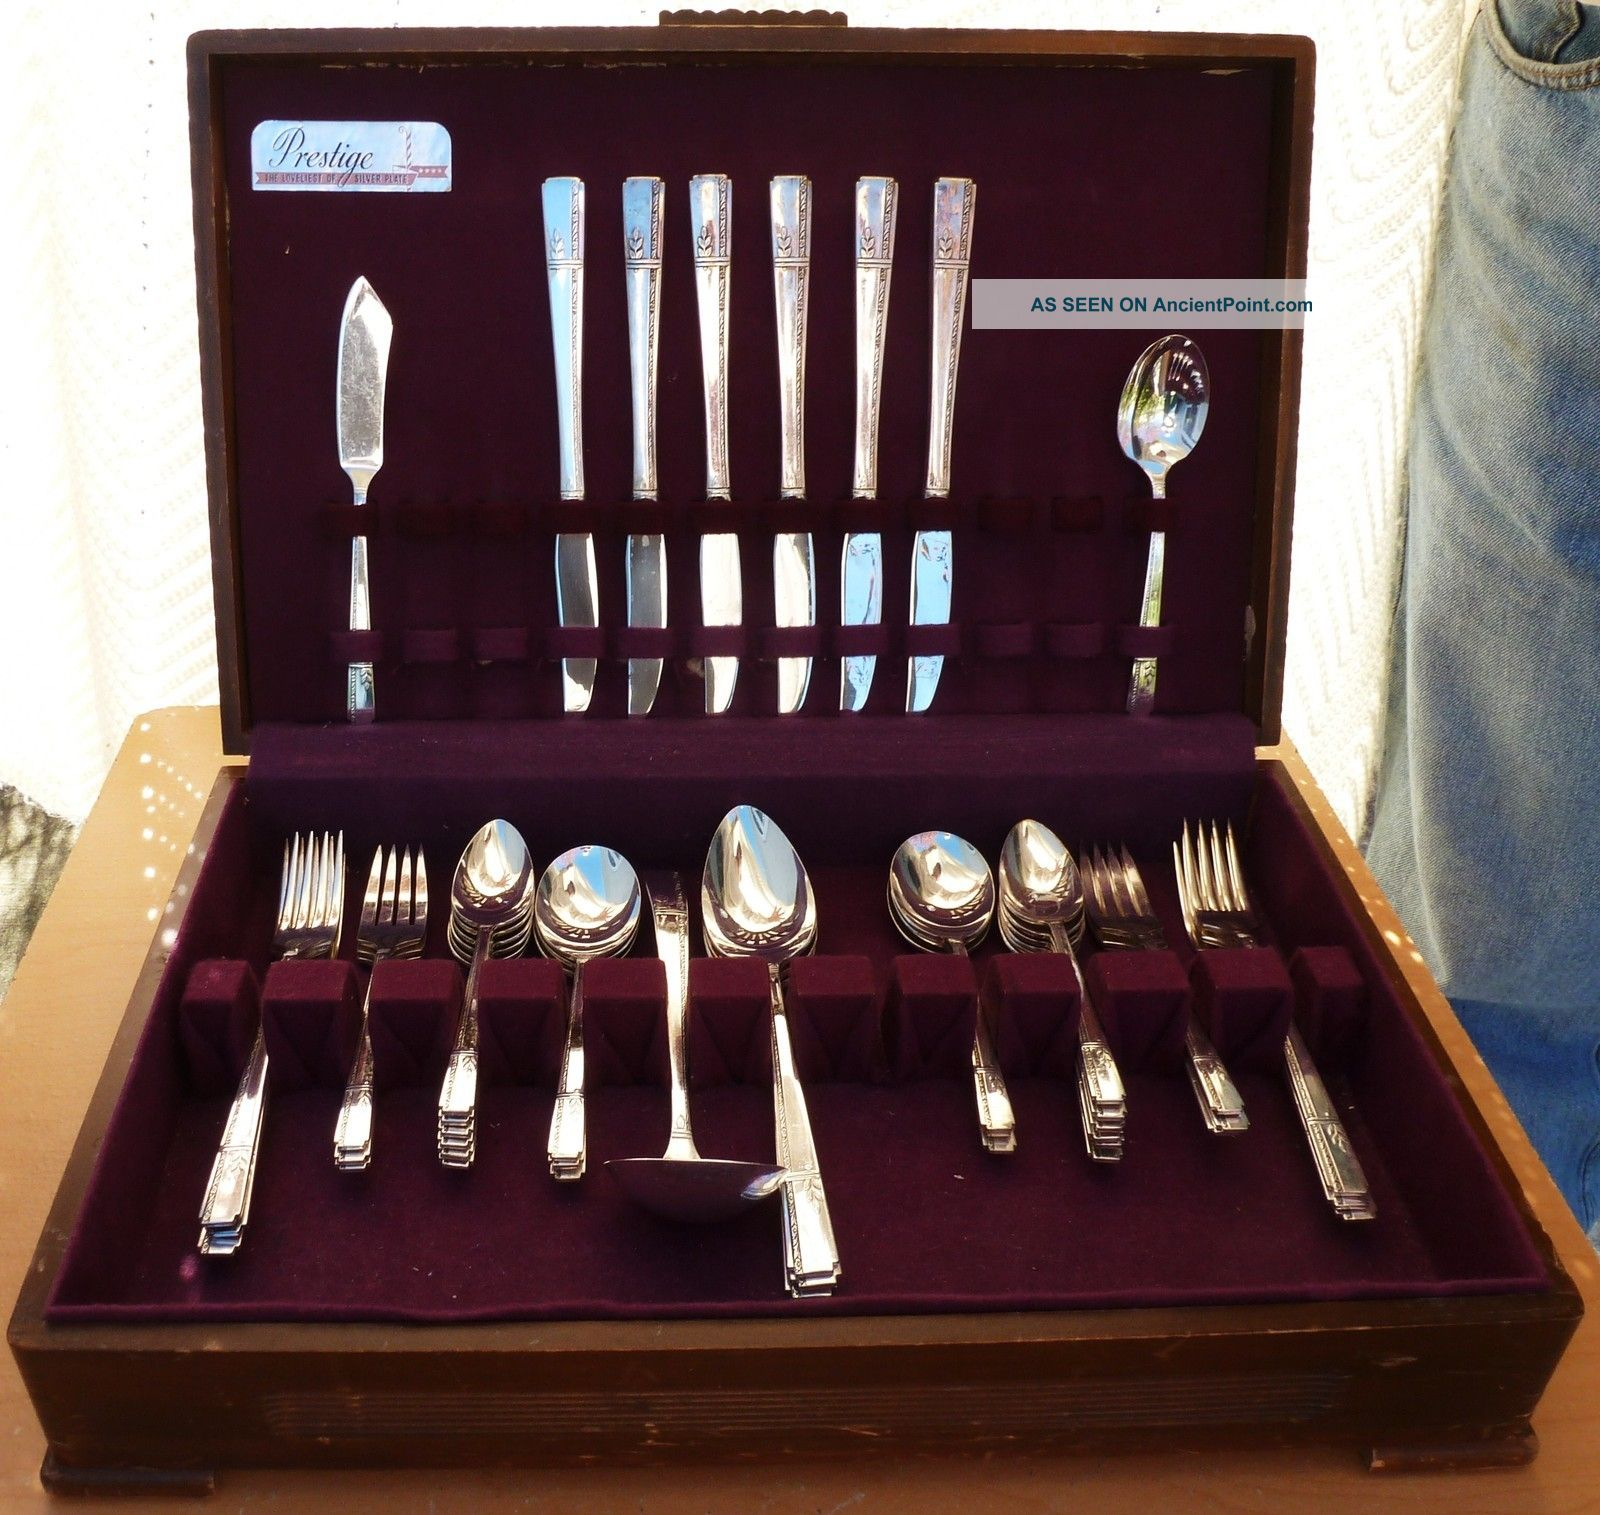 Oneida Prestige Silverplate Flatware Set,  Grenoble,  1938, Oneida/Wm. A. Rogers photo